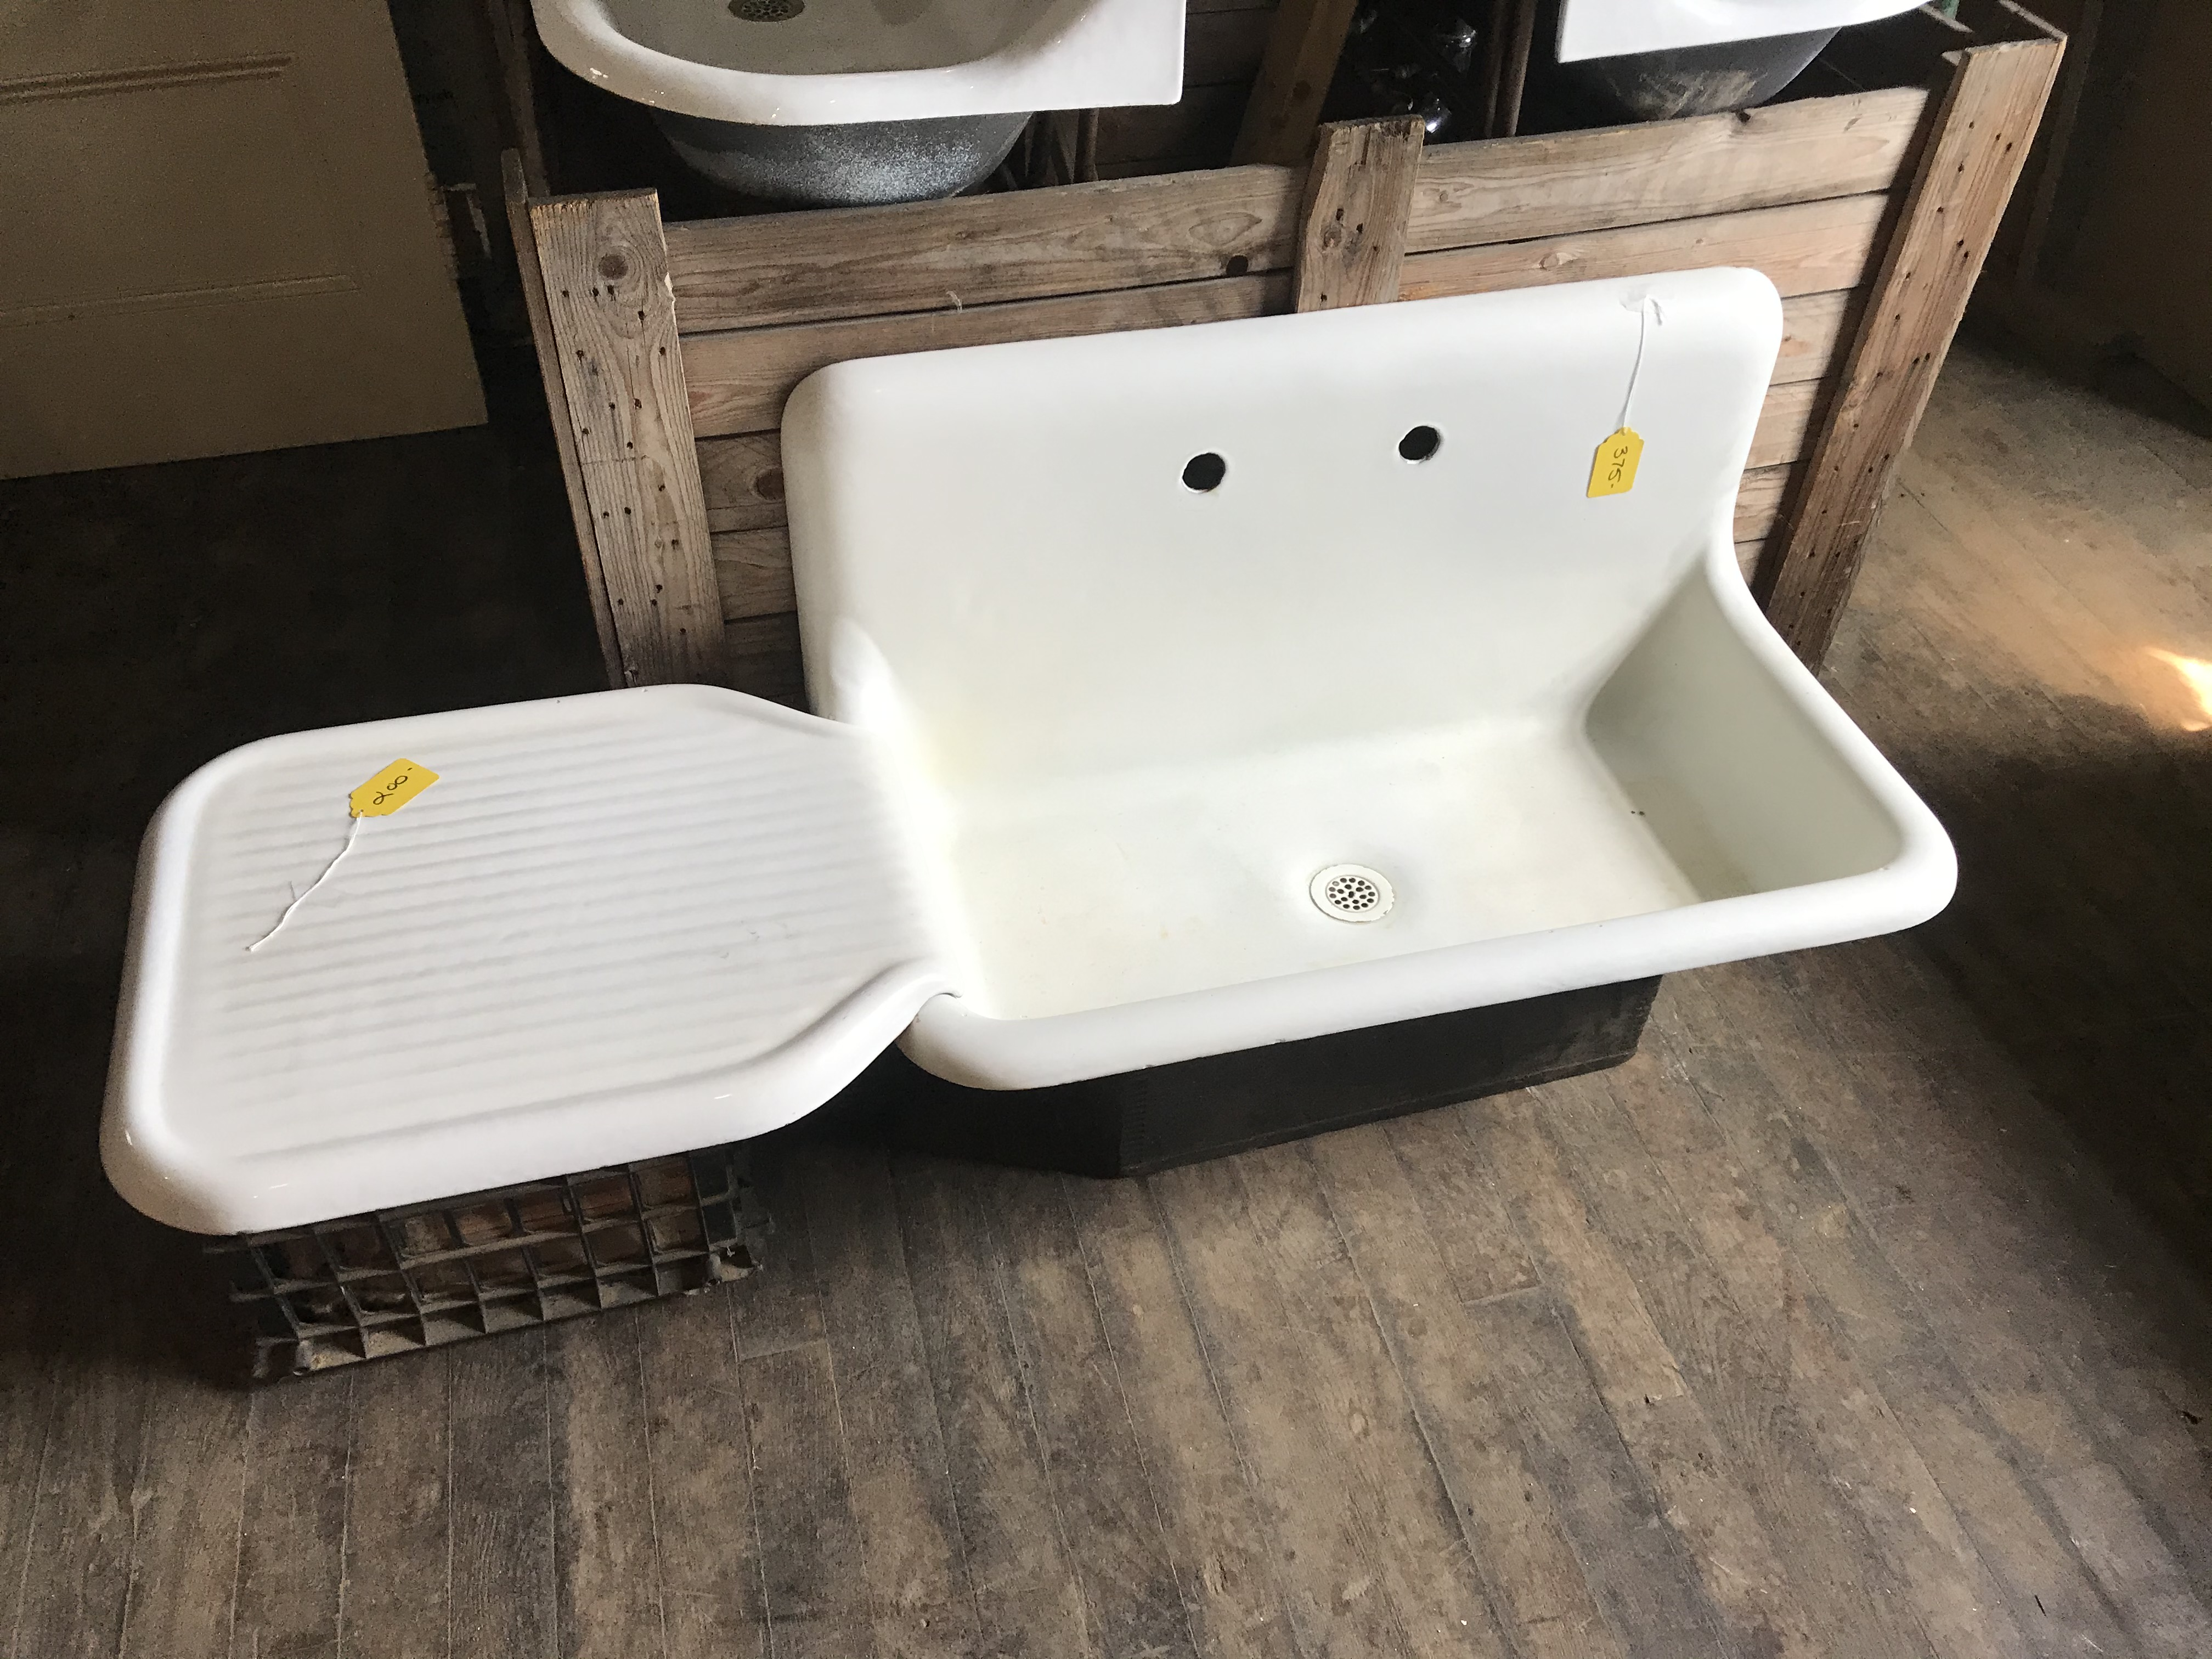 Sink with drain board